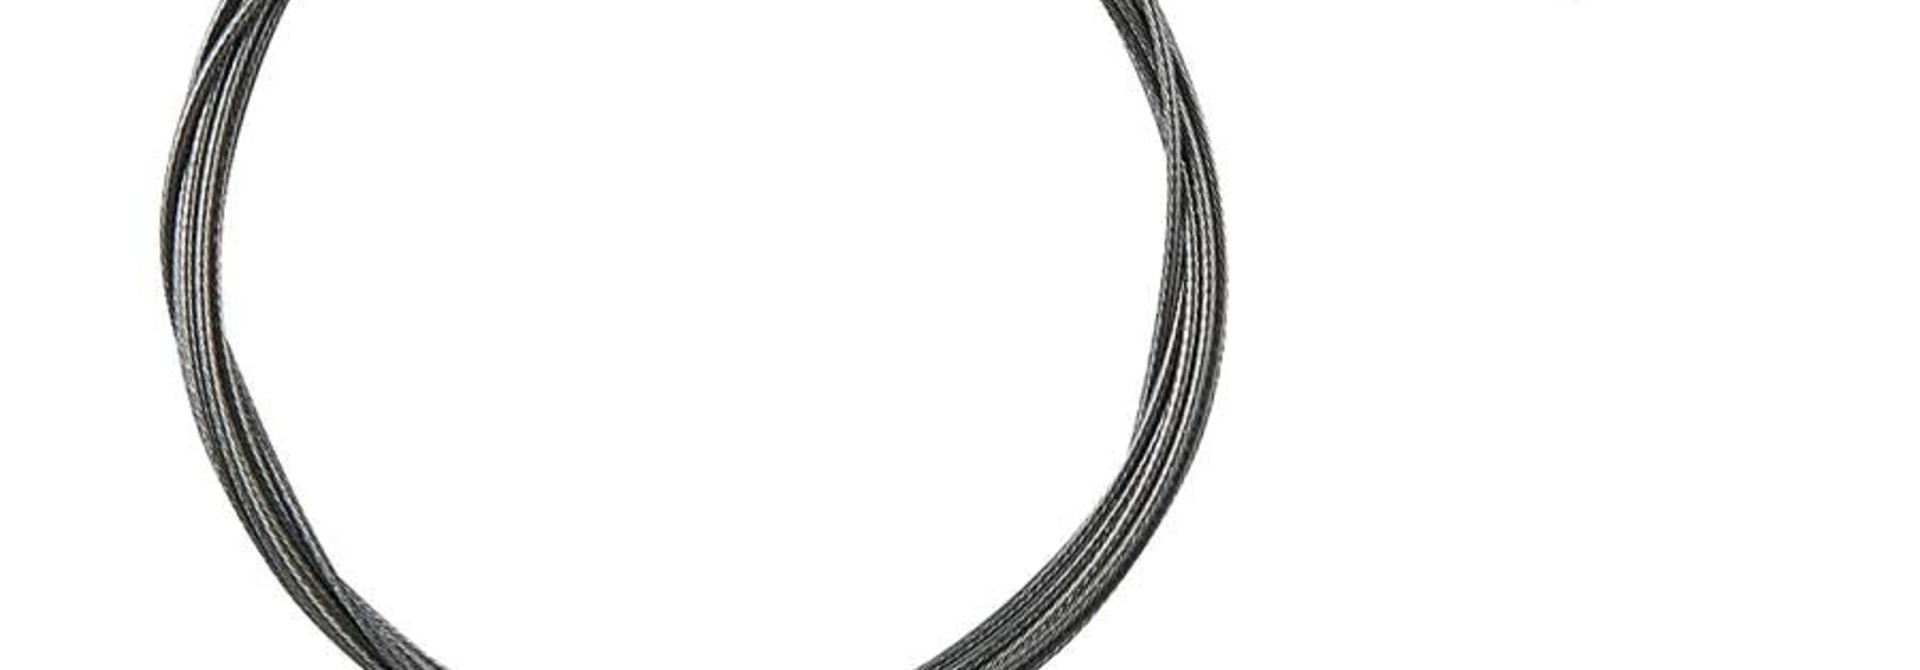 Shimano, Shifter Cable, 1.2mm, 2100mm, Stainless Steel, Optislick, Shimano/SRAM, Unit